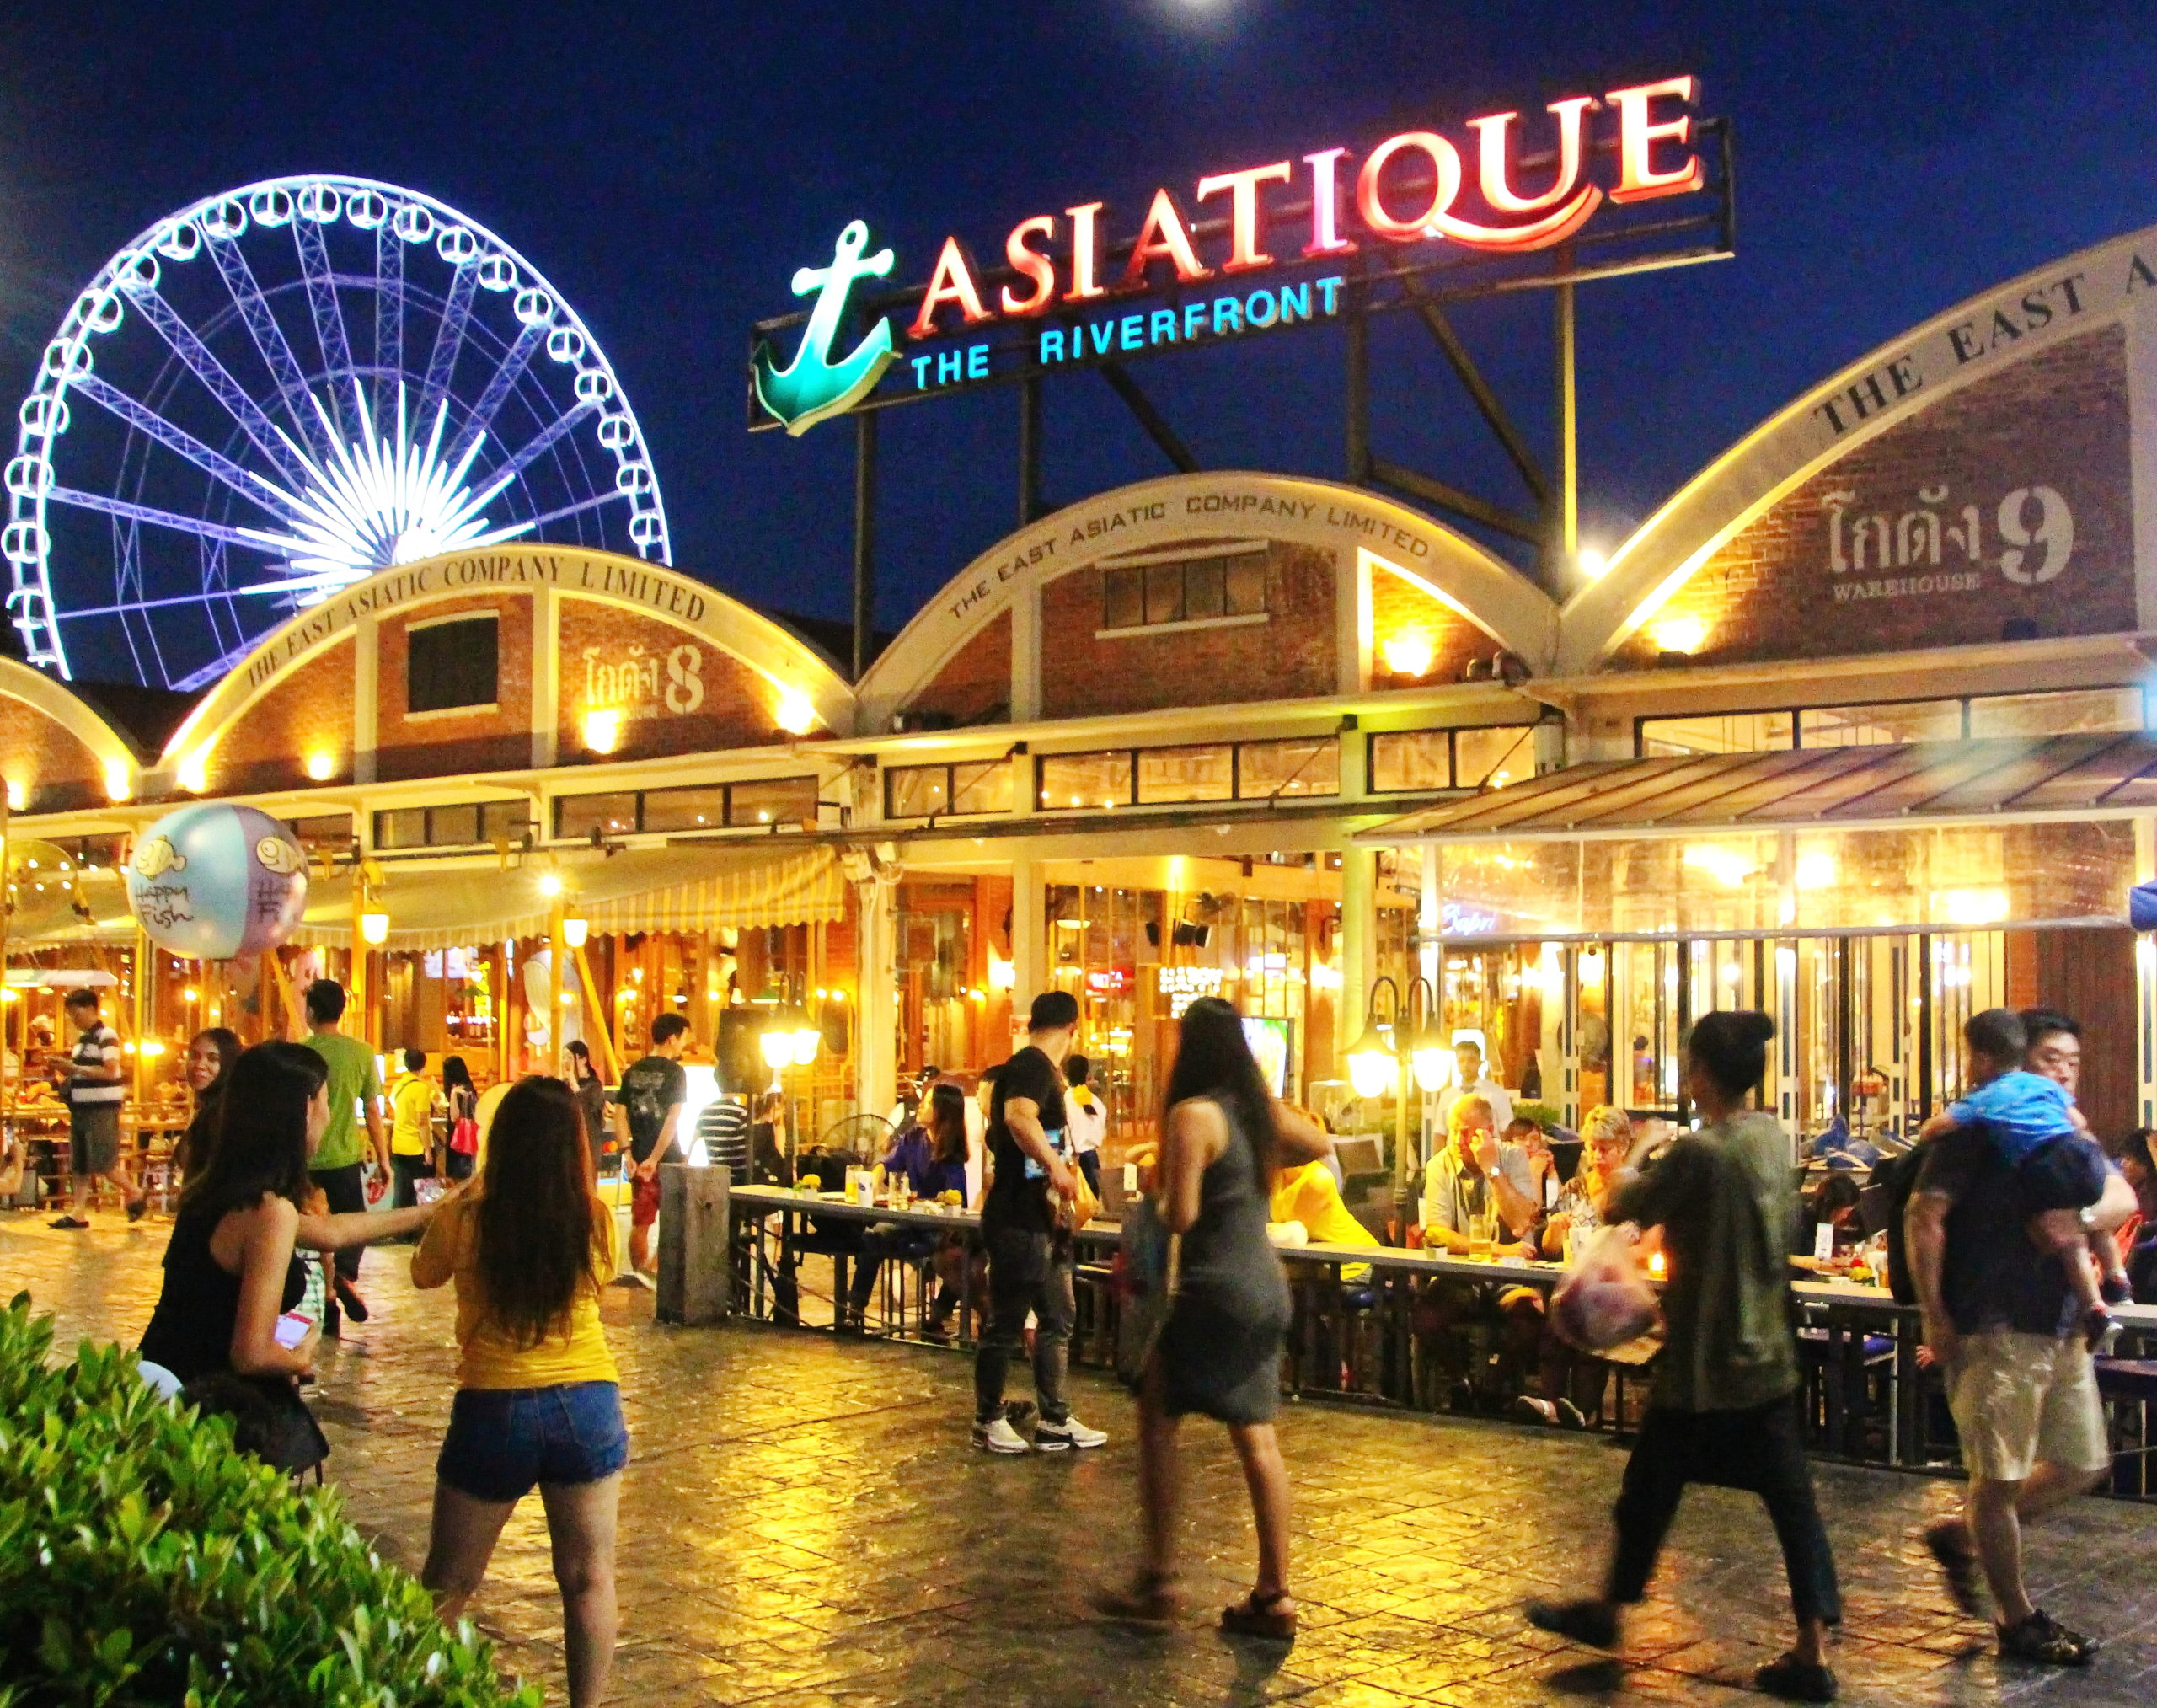 Asiatique-1-scaled.jpg